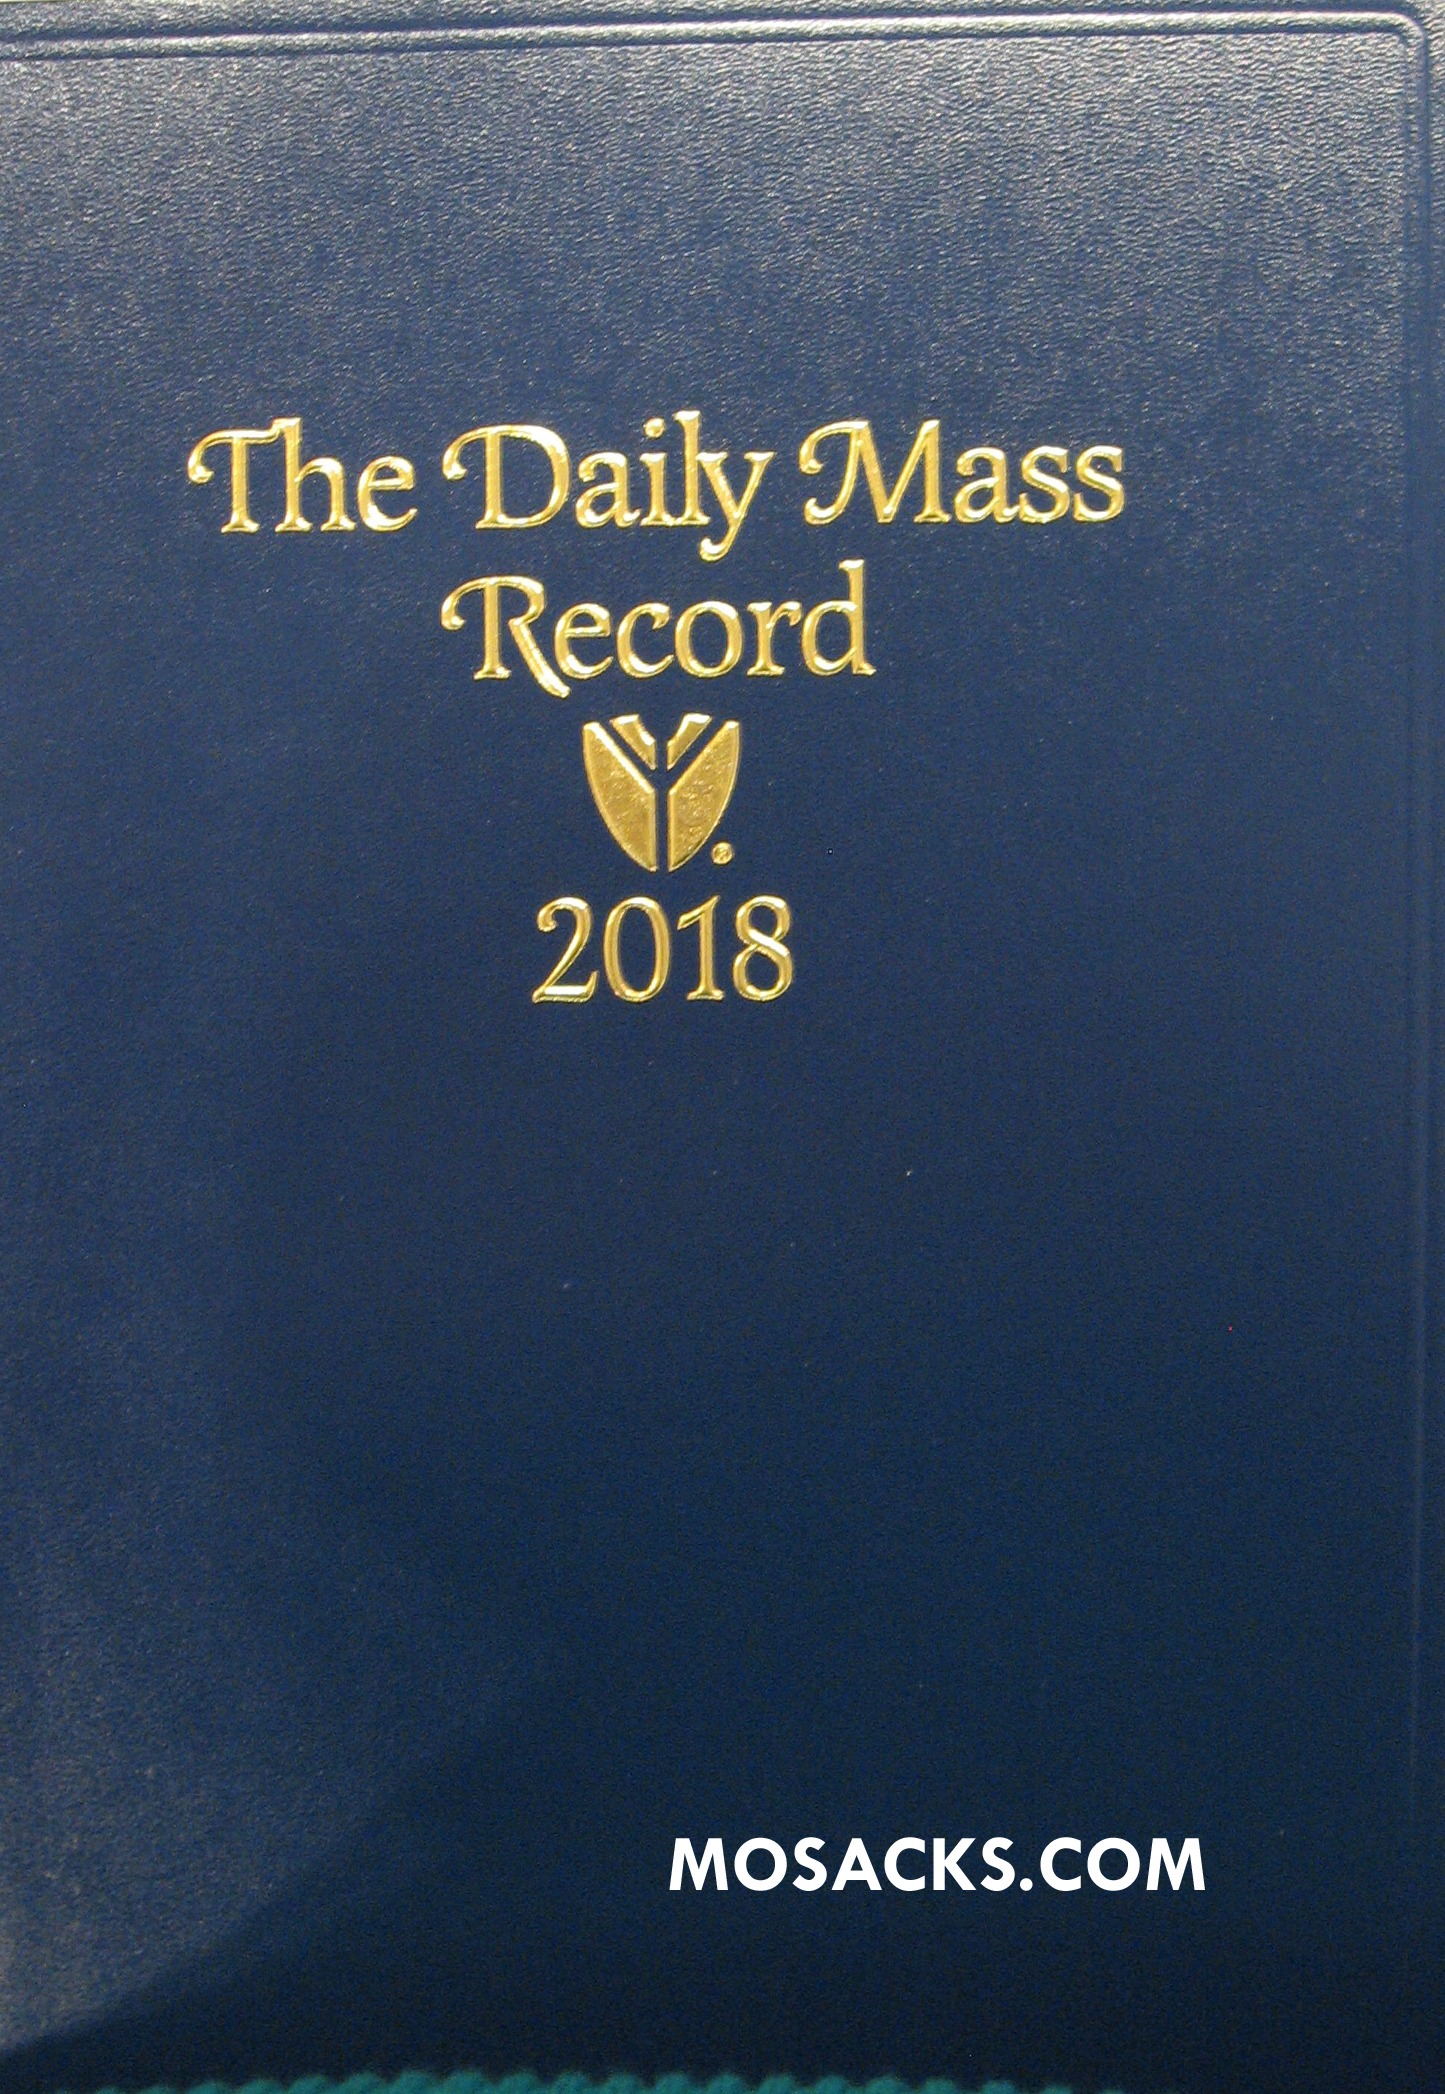 Daily Mass Record 2018